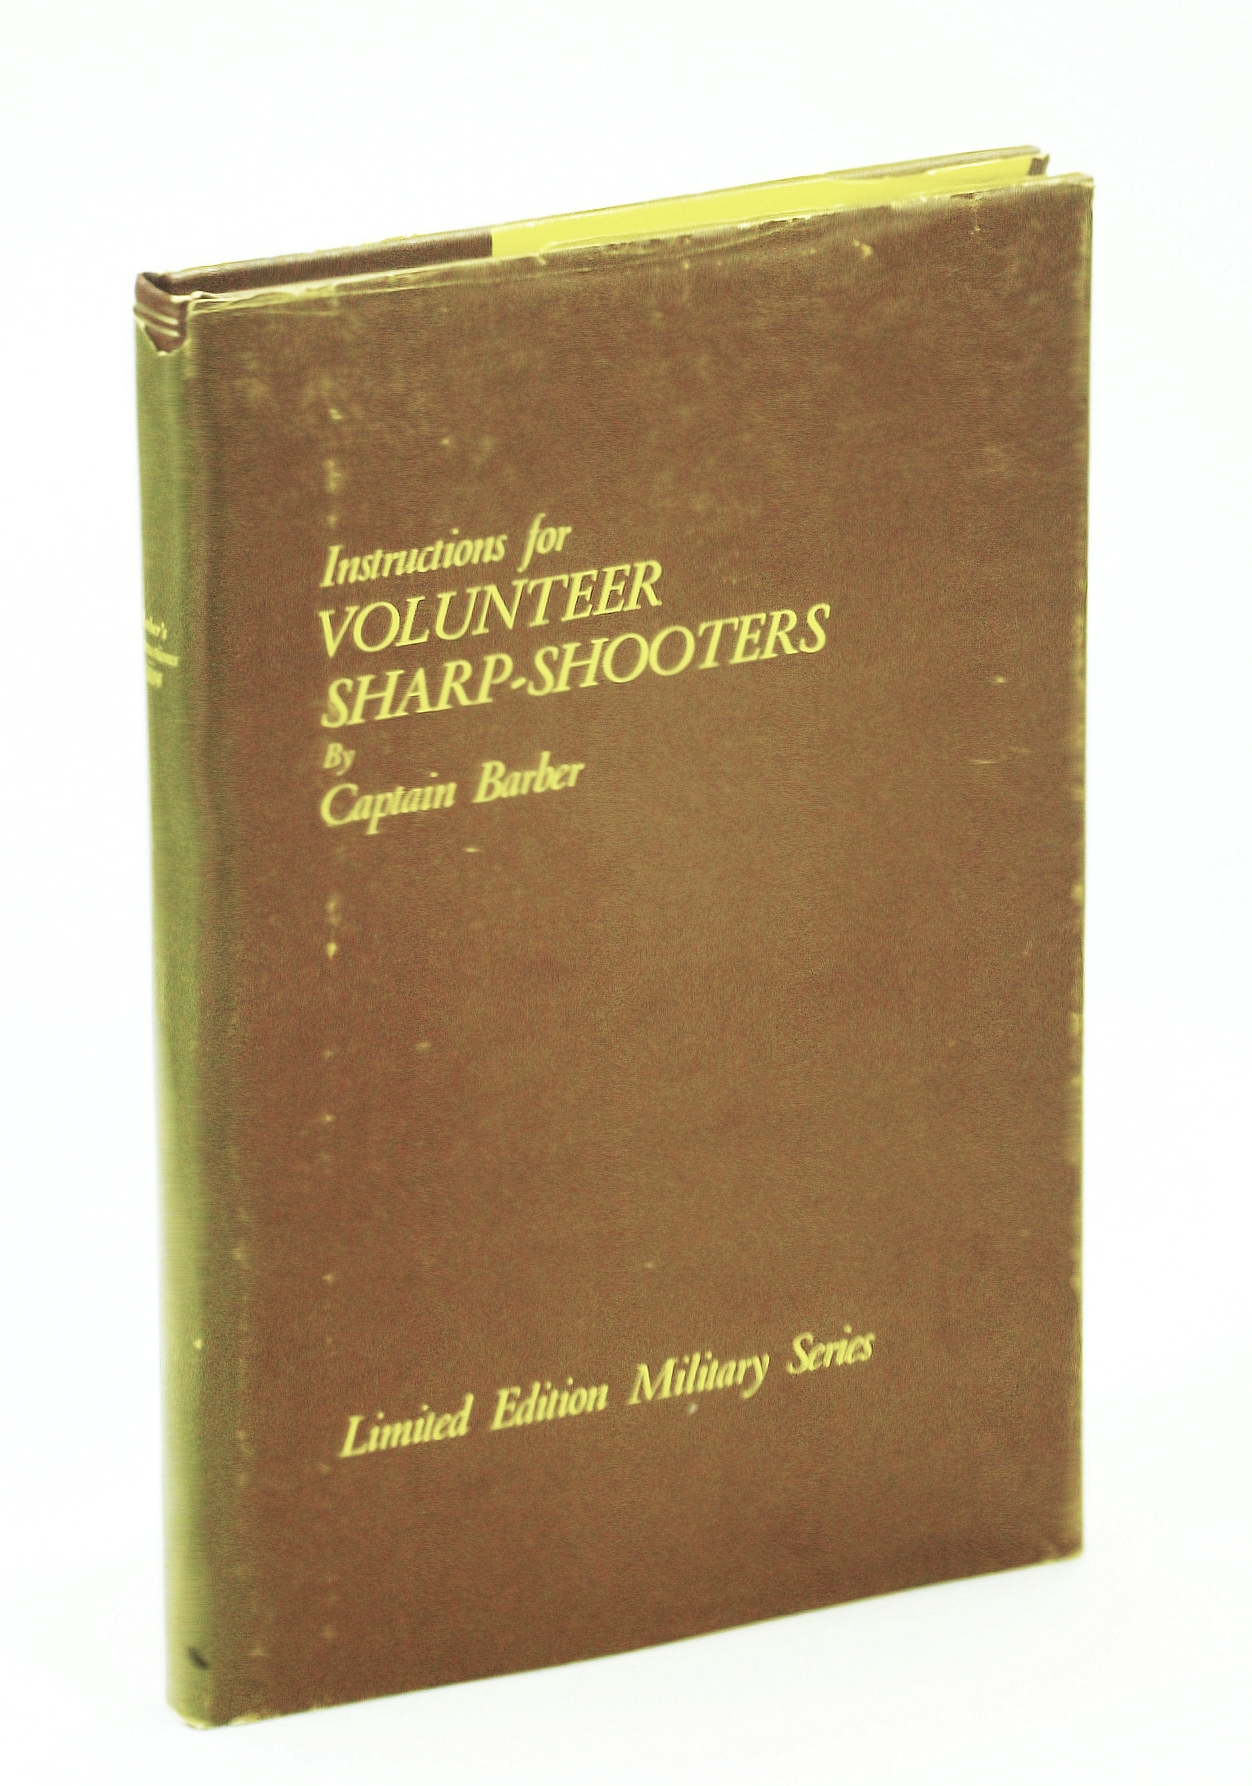 Image for Instructions for the Formation and Exercise of Volunteer Sharp-shooters (Limited Edition Military)